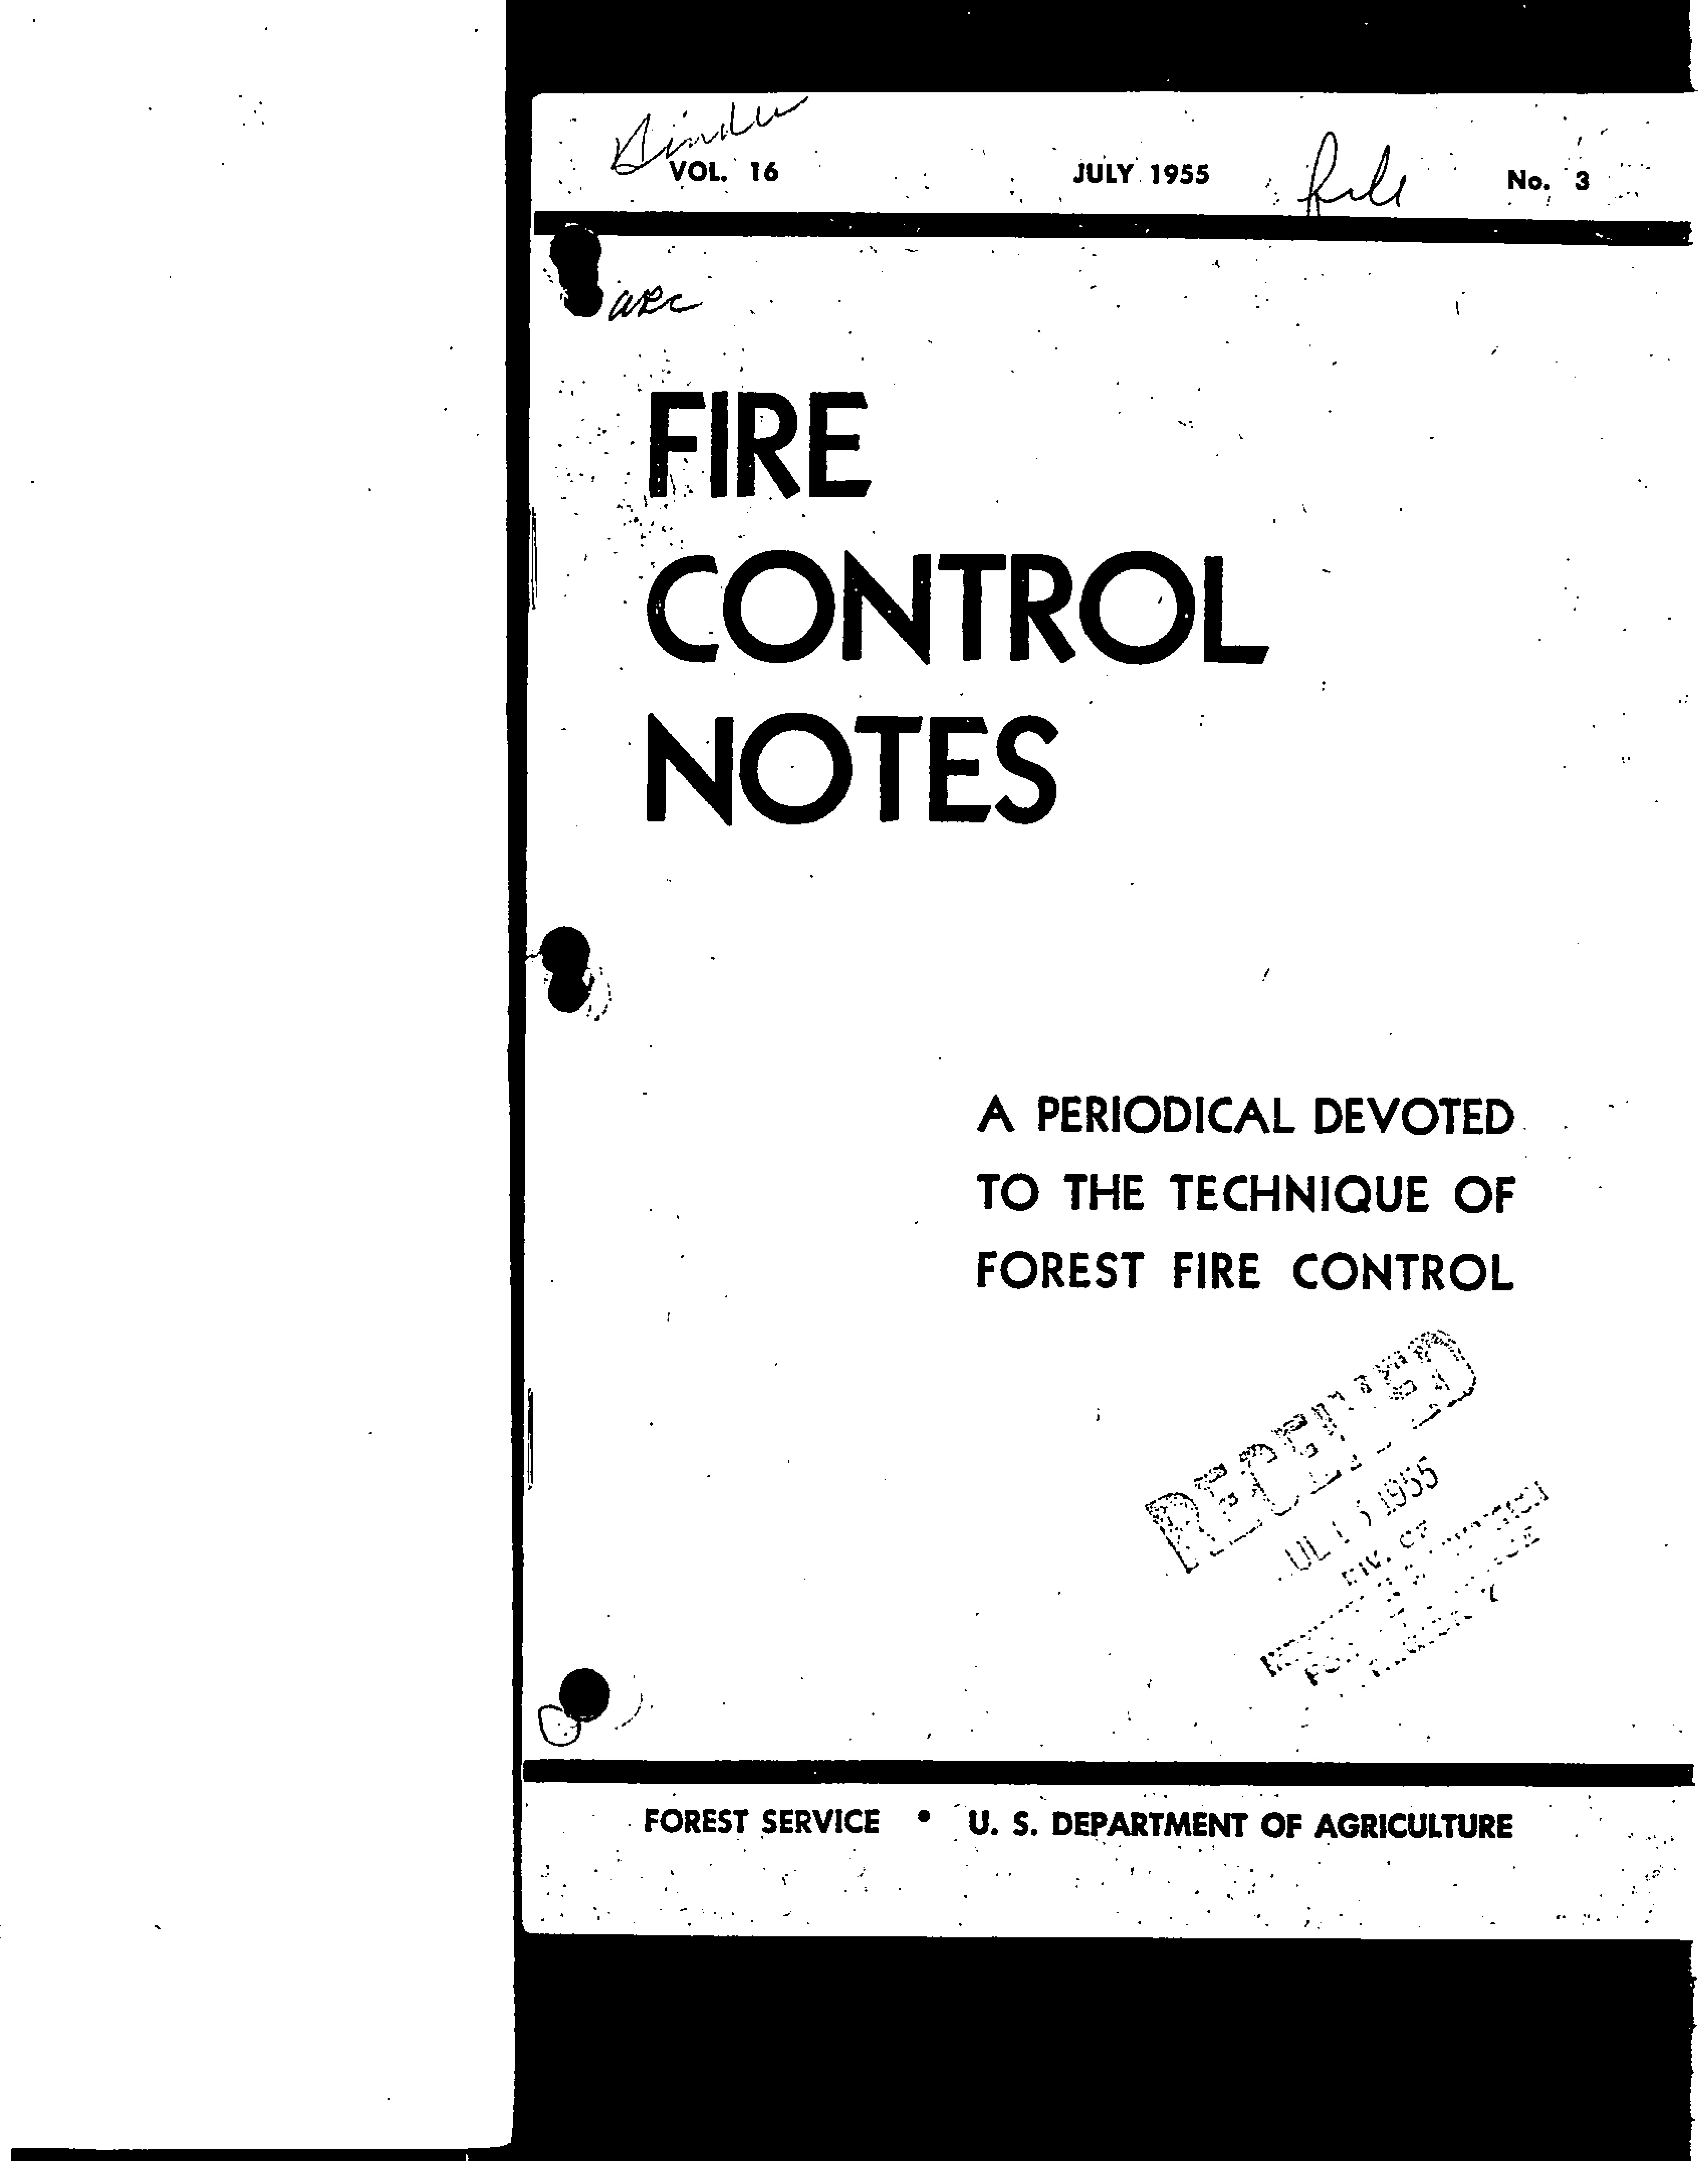 Cover of Fire Management Today Volume 16, Issue 03